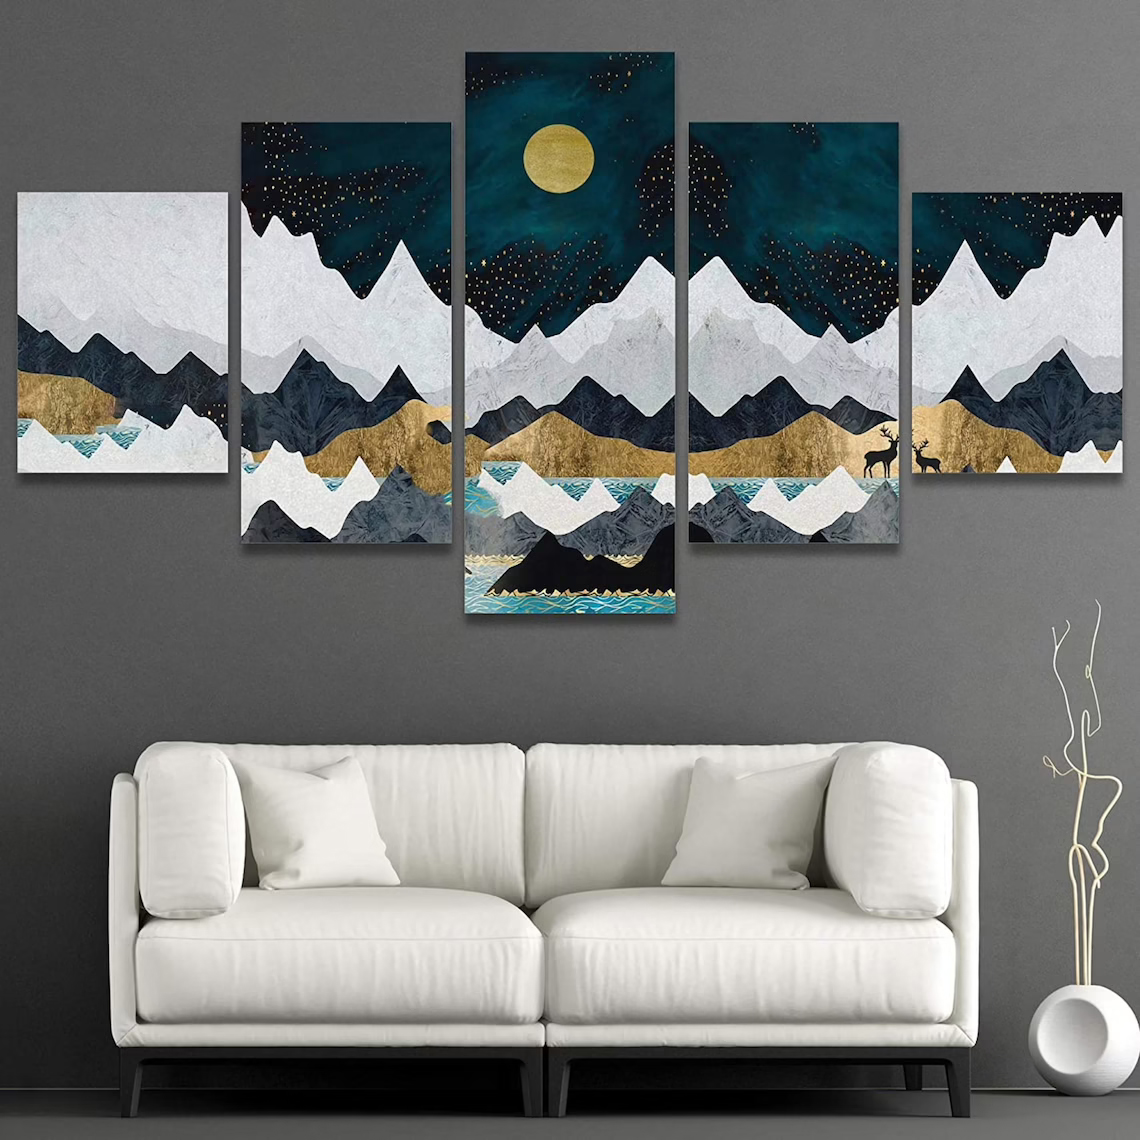 Mountain under blue sky with moon 5 piece wall art canvas